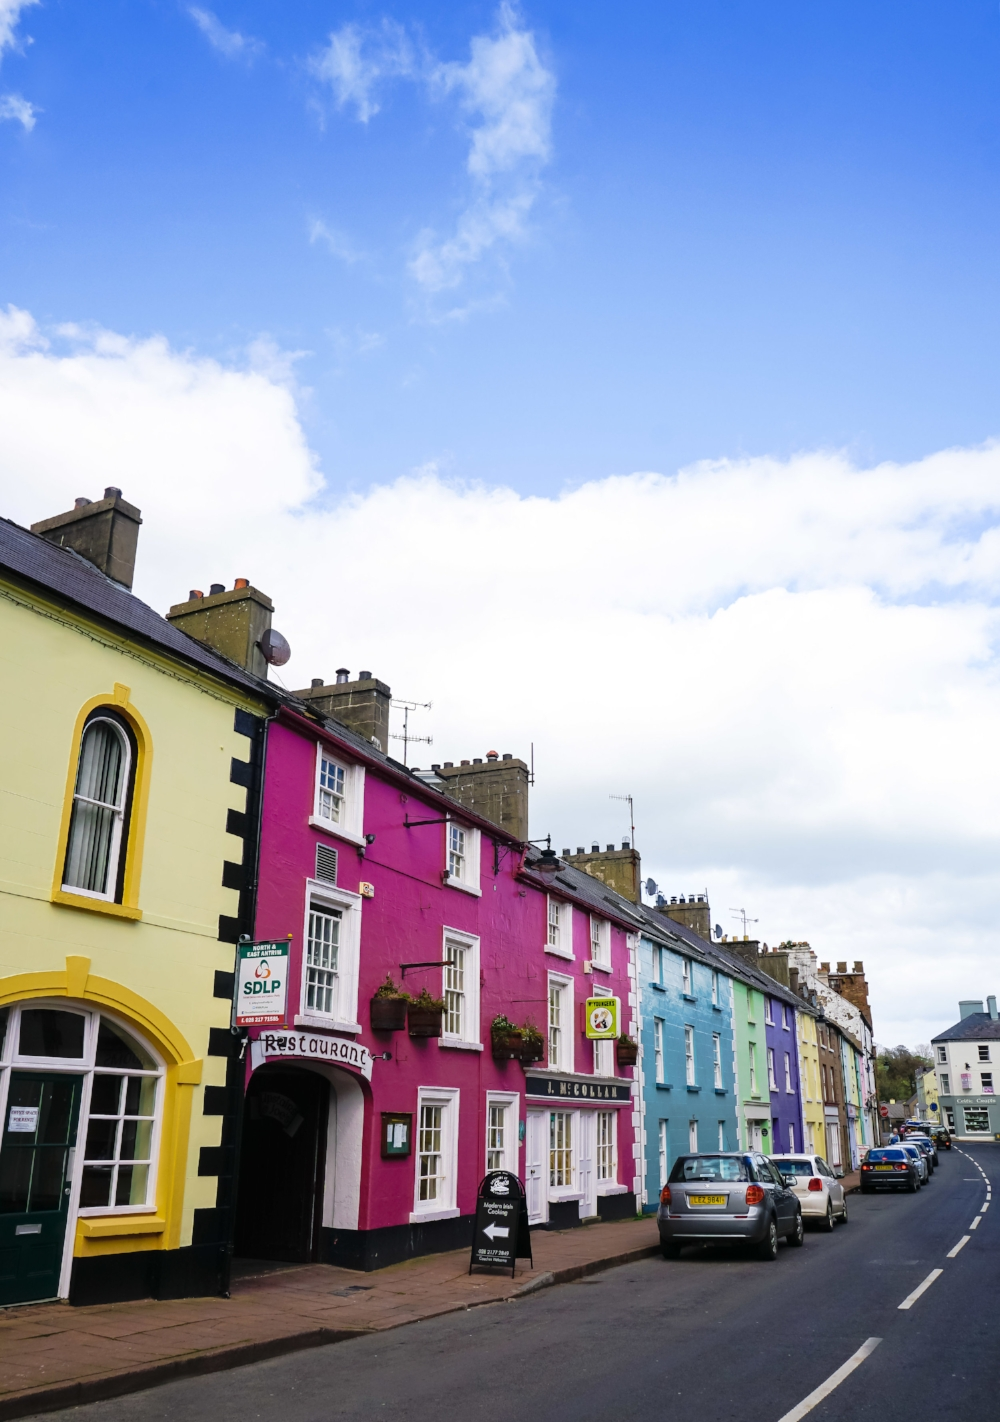 curio.trips.ireland.village.colourful.street.scenes-2.jpg